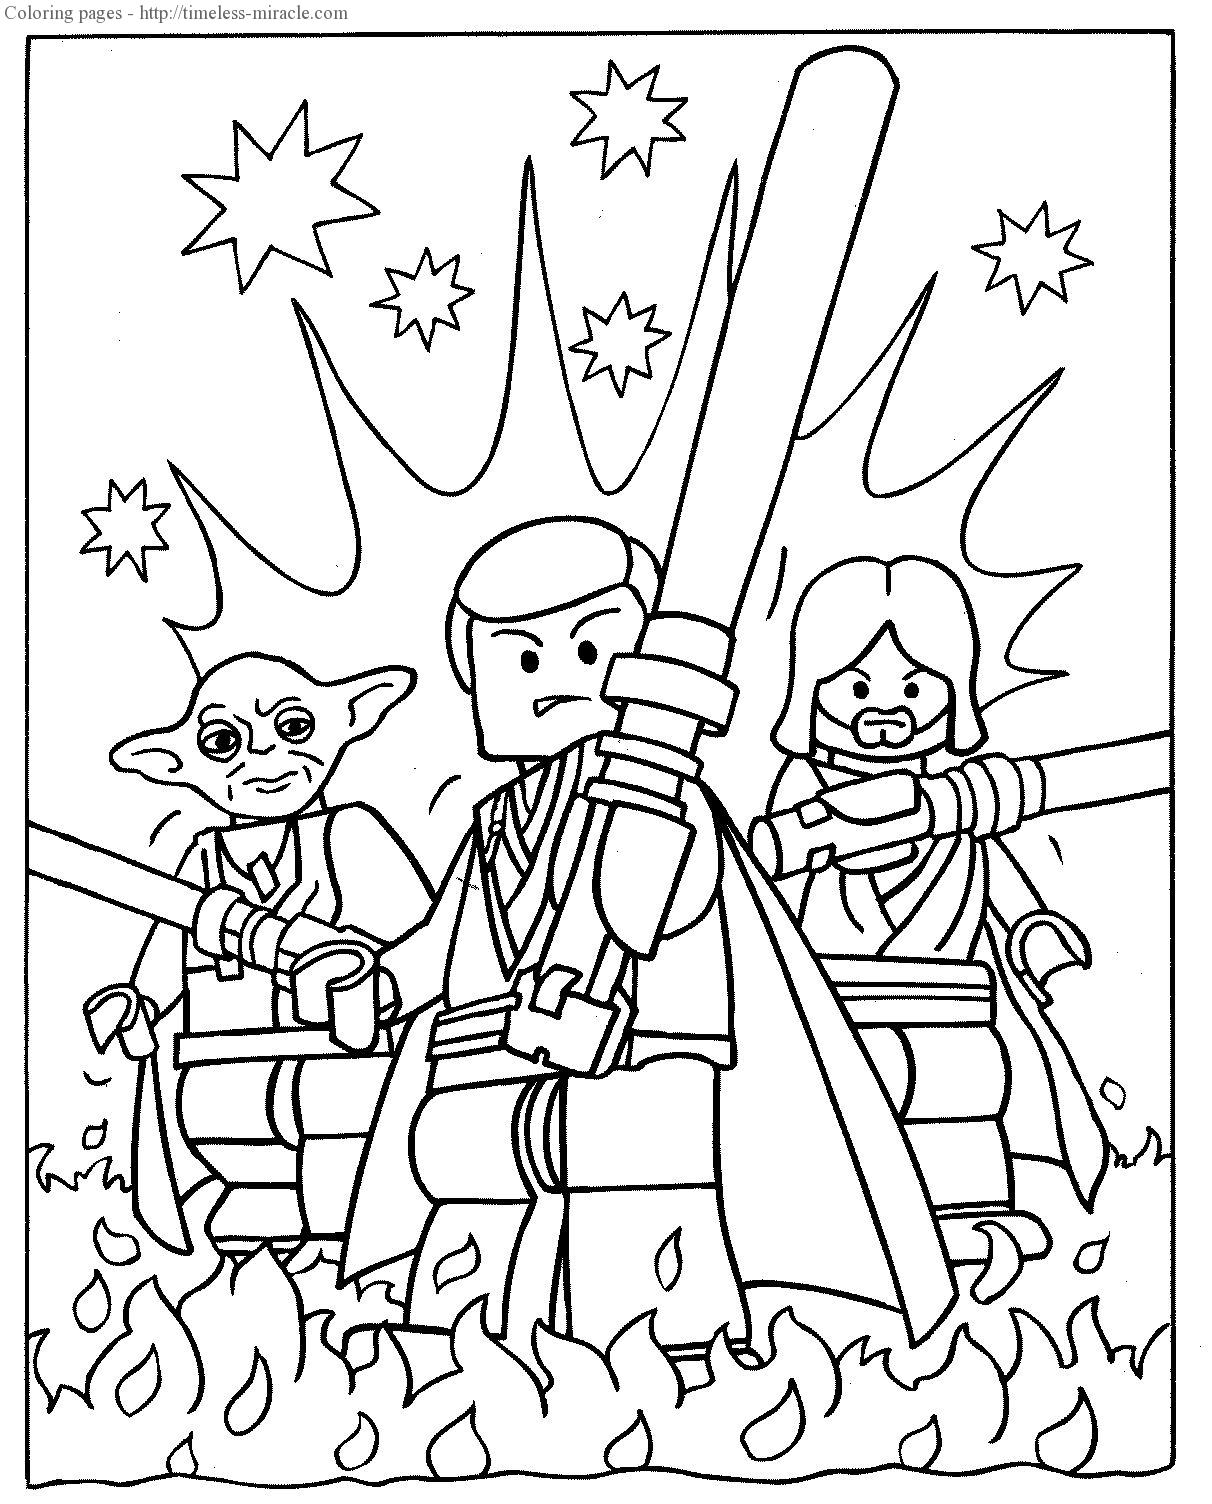 lego star wars coloring printables lego star wars coloring pages free timeless miraclecom star wars lego coloring printables